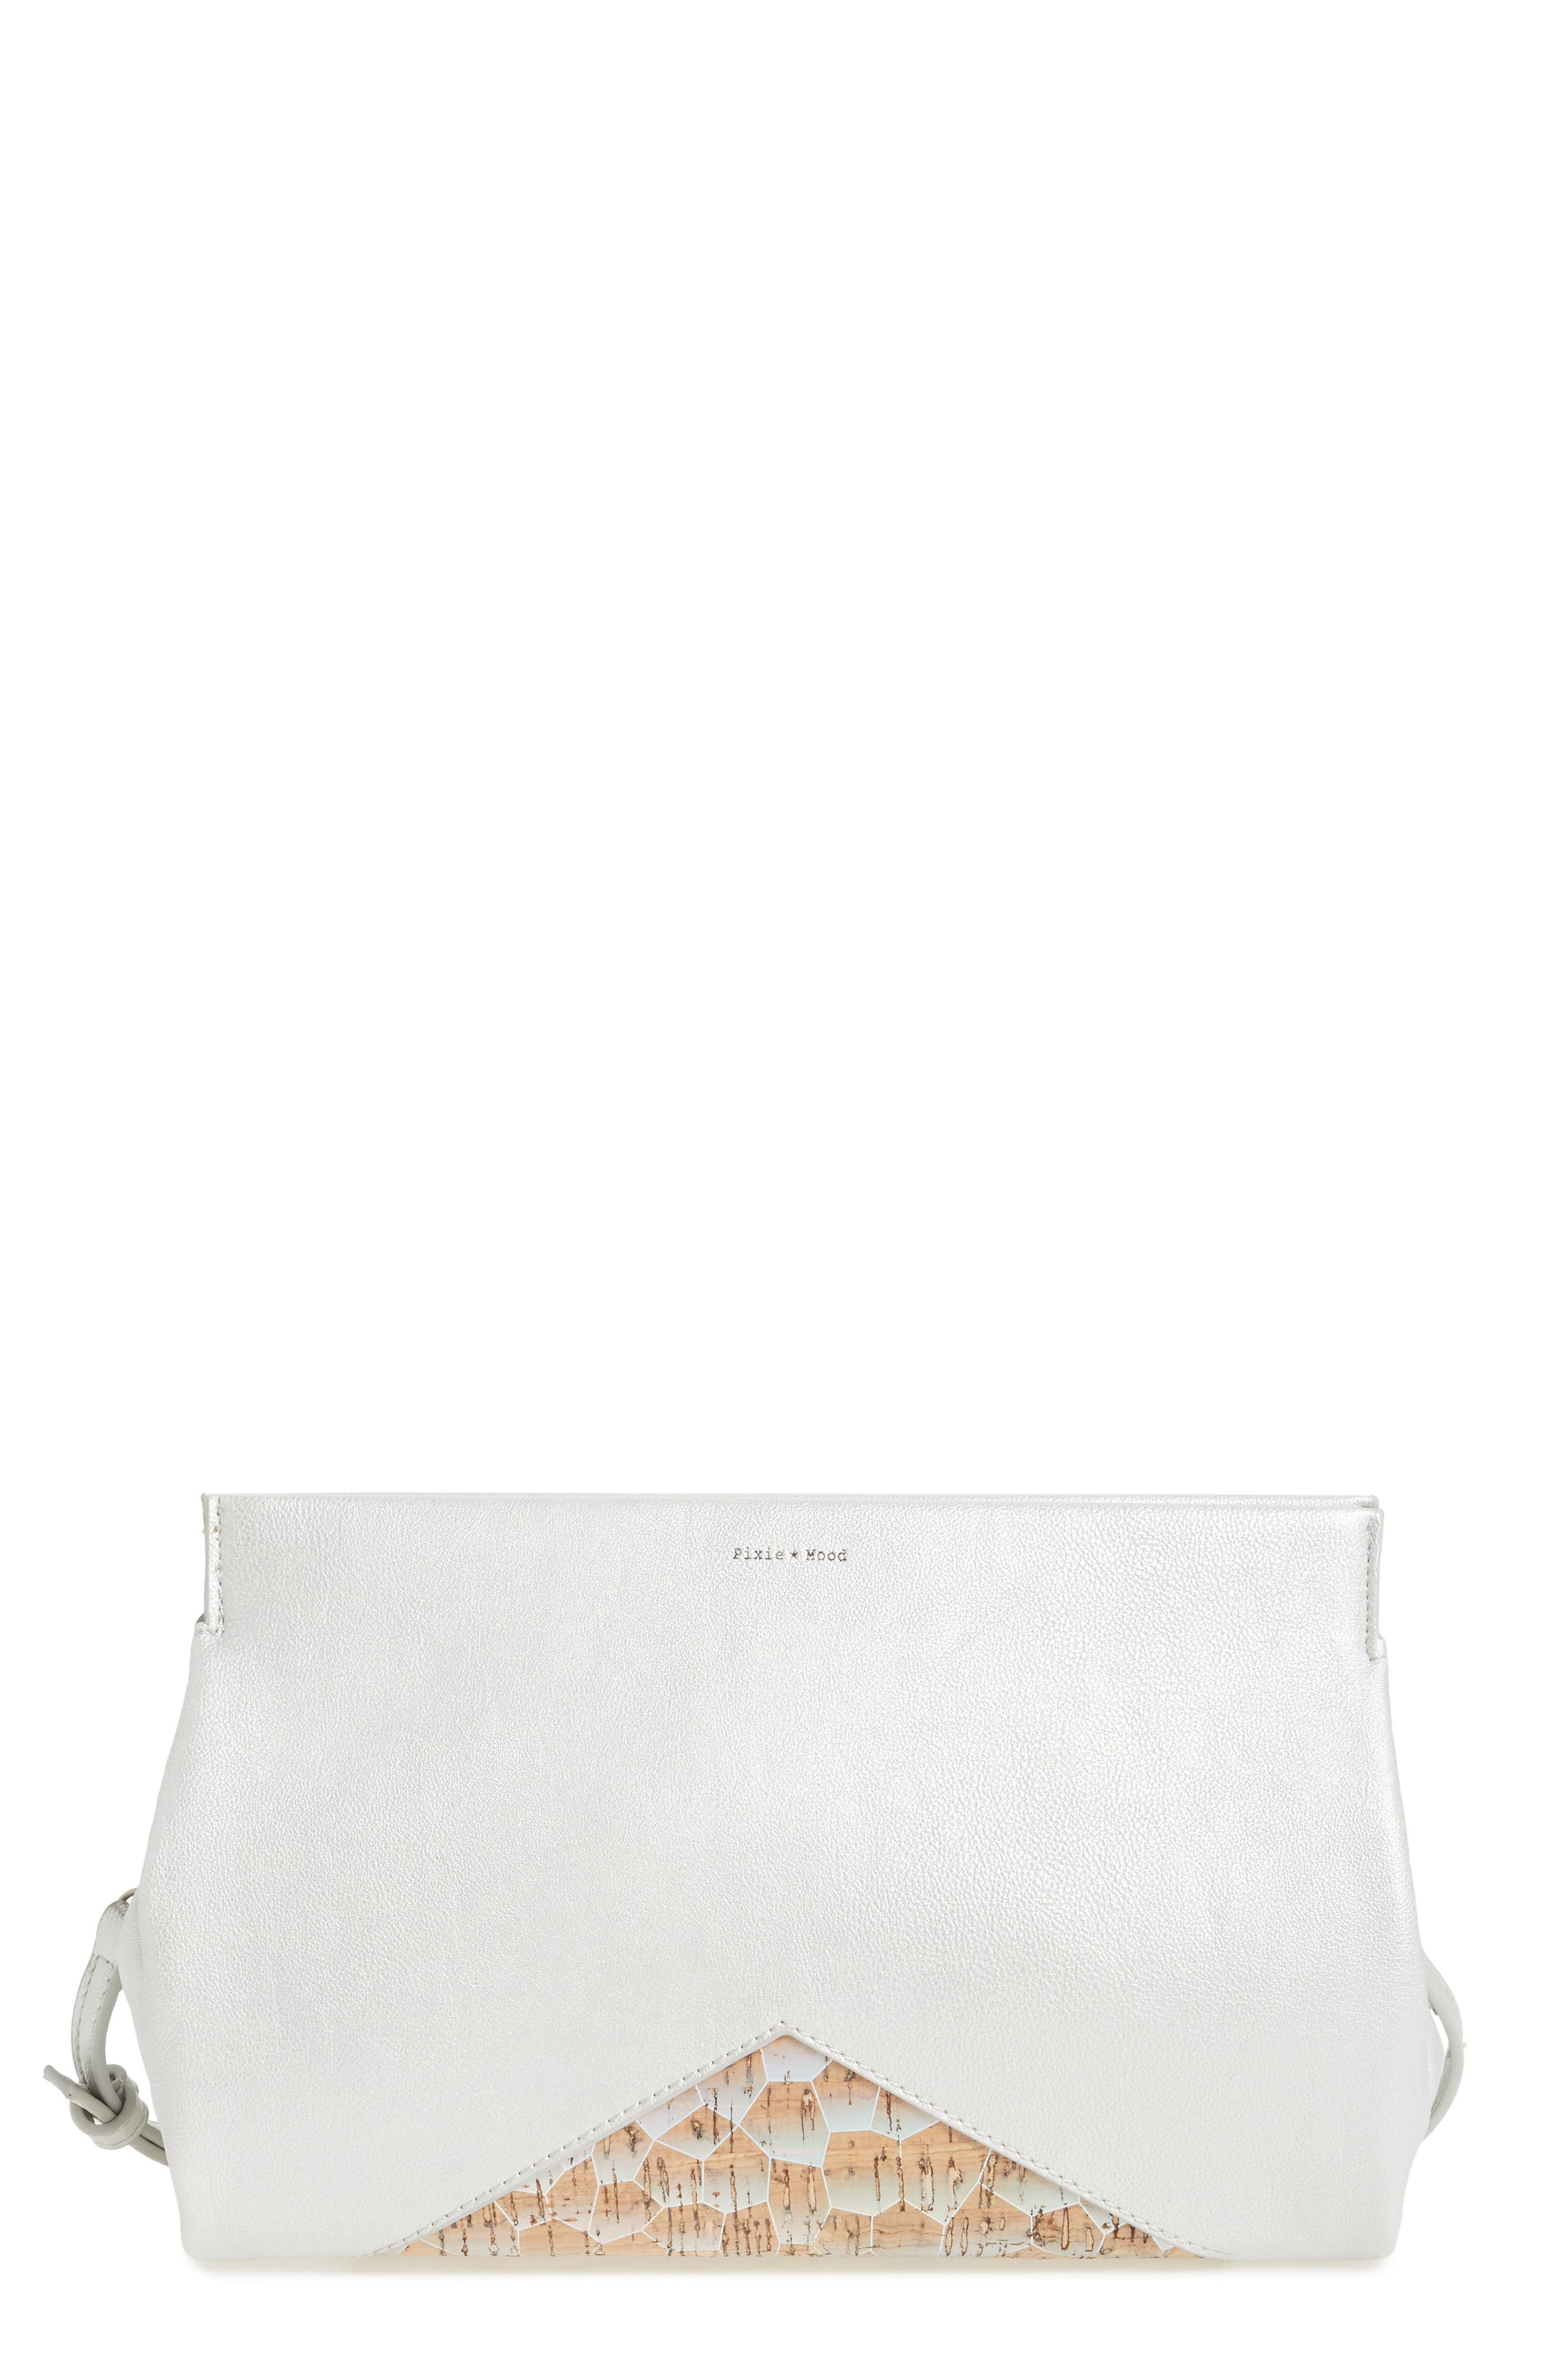 Pixie Mood Margaret Faux Leather Clutch